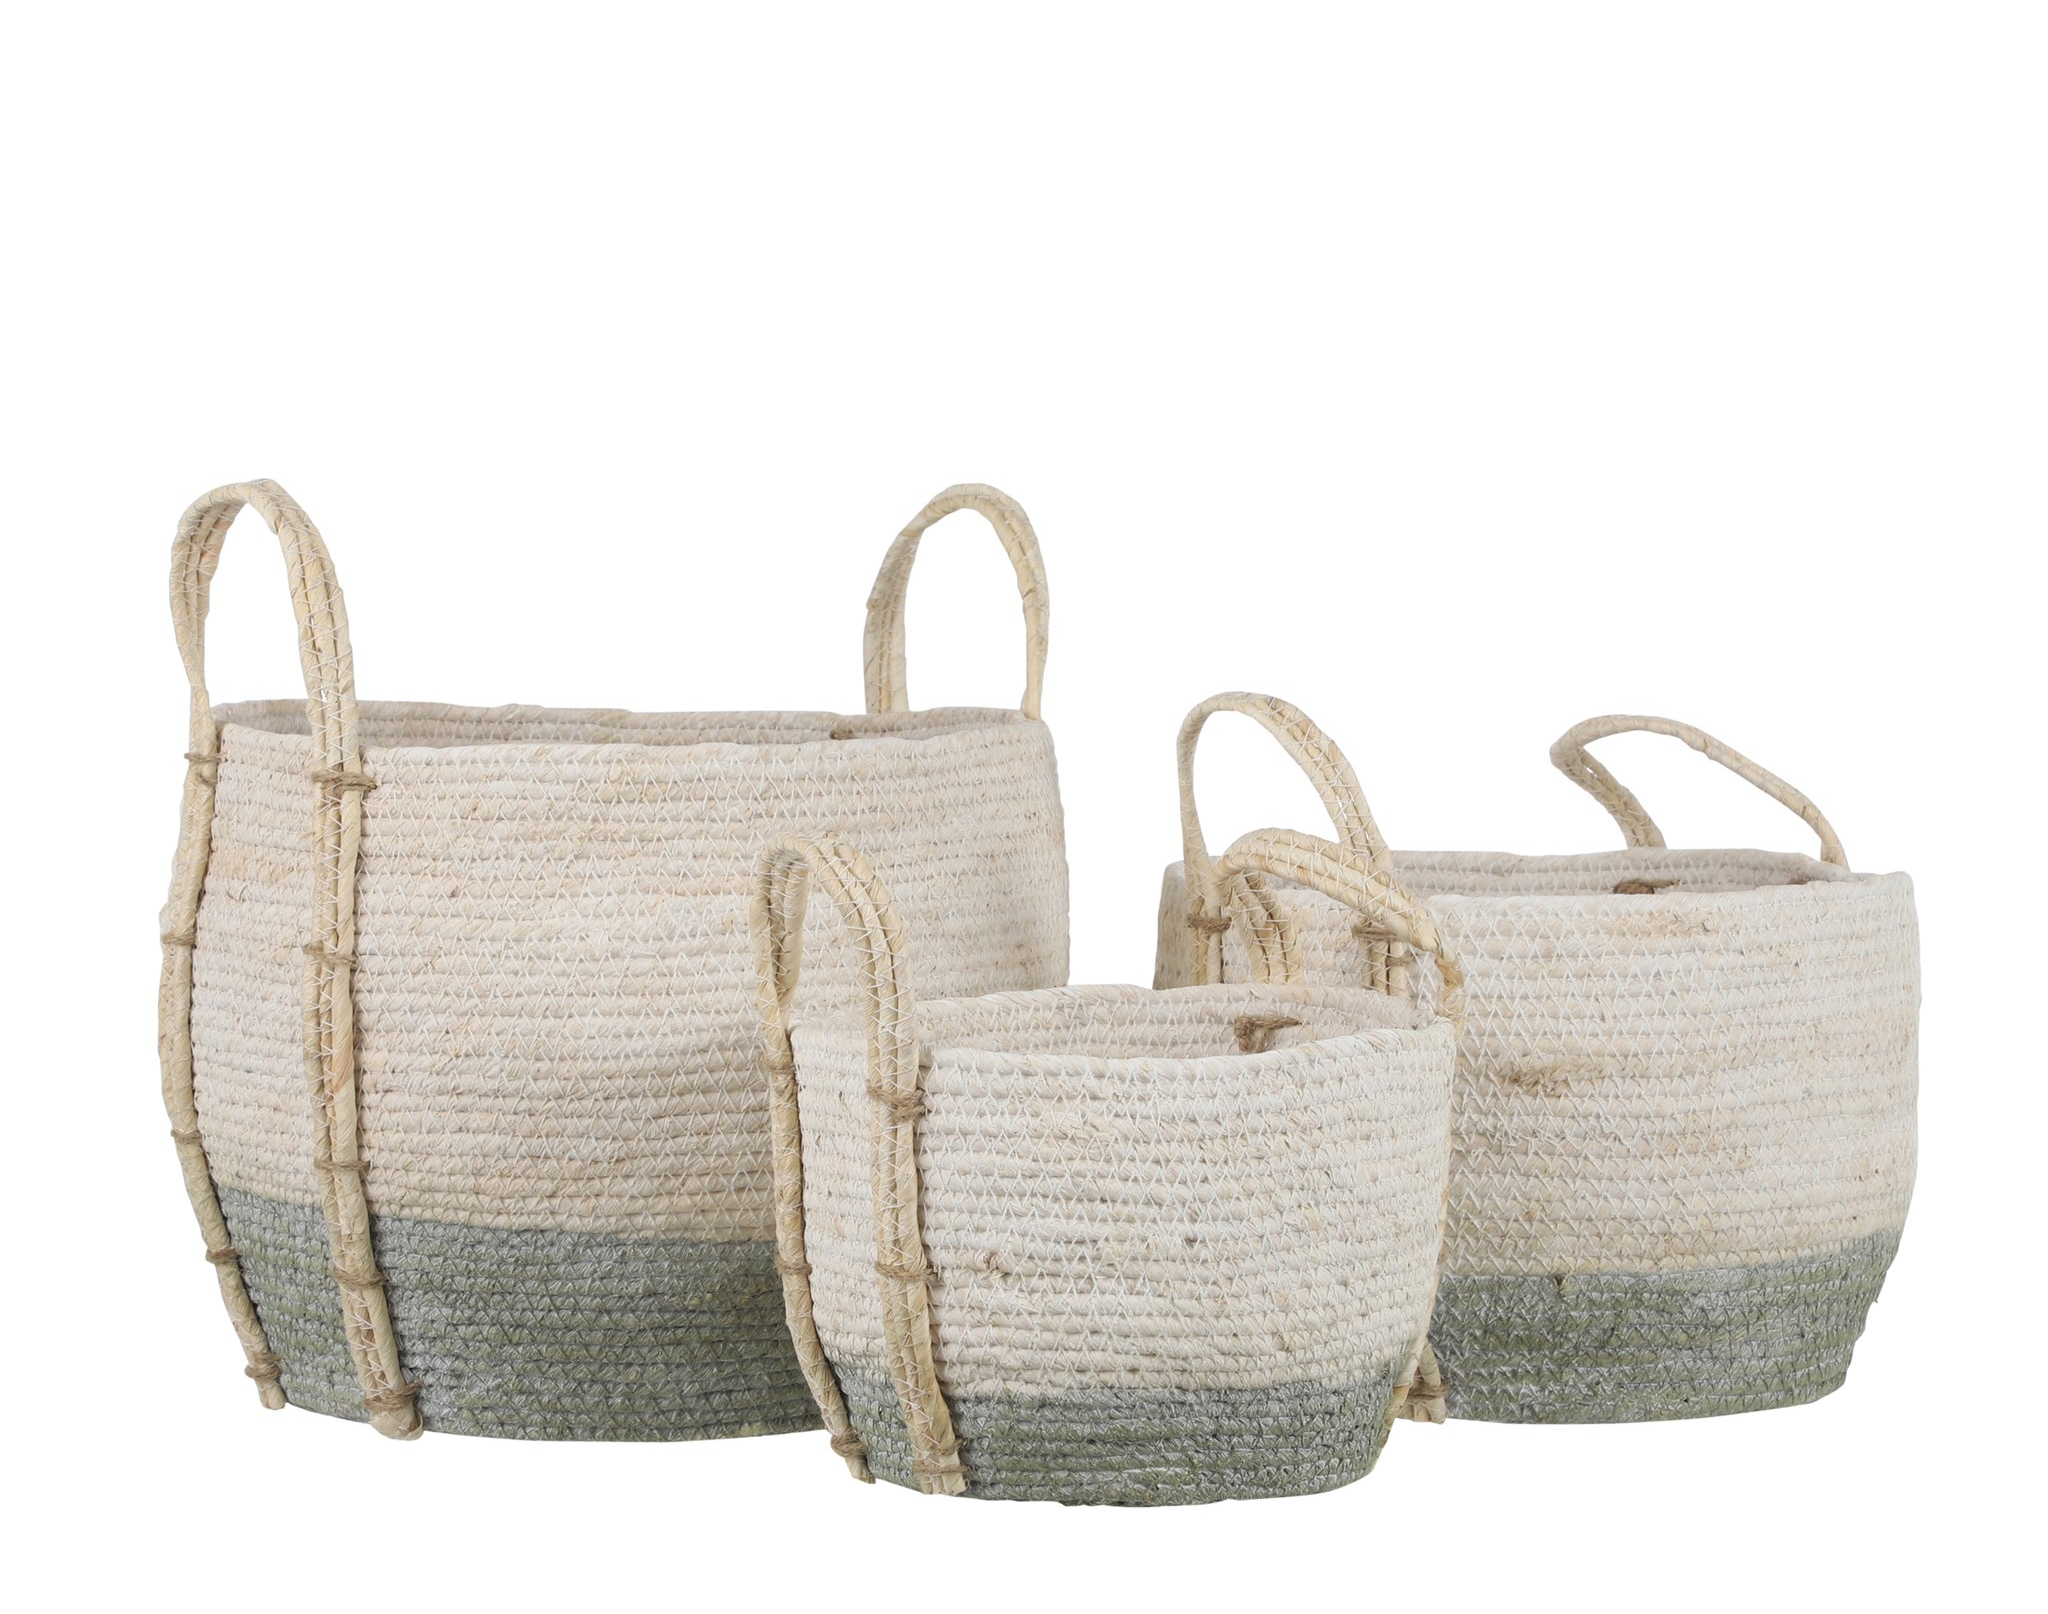 Andros Sage Round Basket Small $19.99 Medium $29.99 Large Sold out